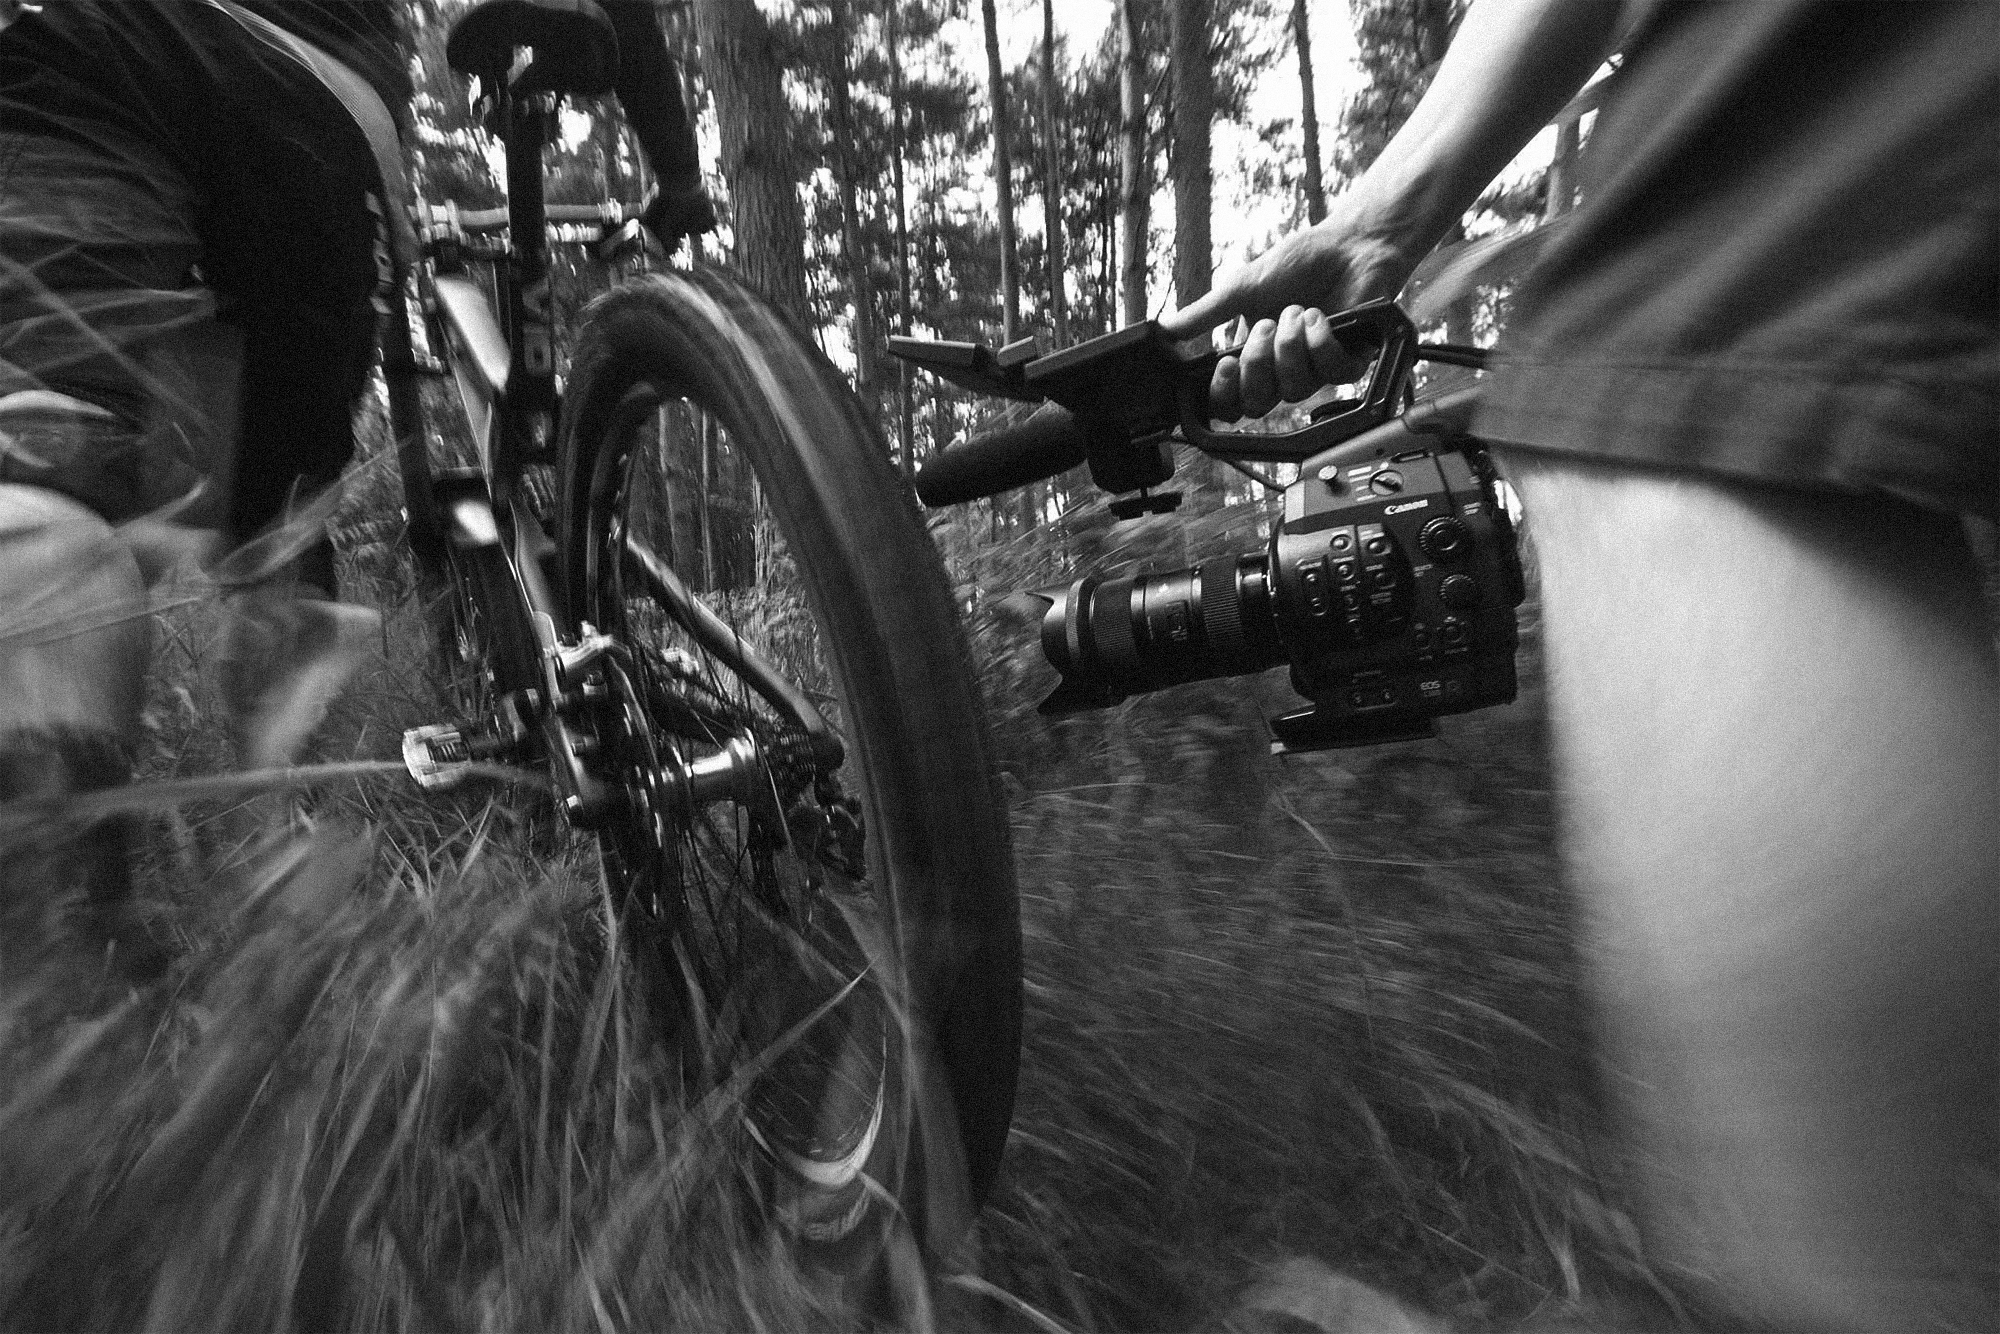 A mountain bike being pushed along a grassy track, with filmmaker and camera tracking alongside.